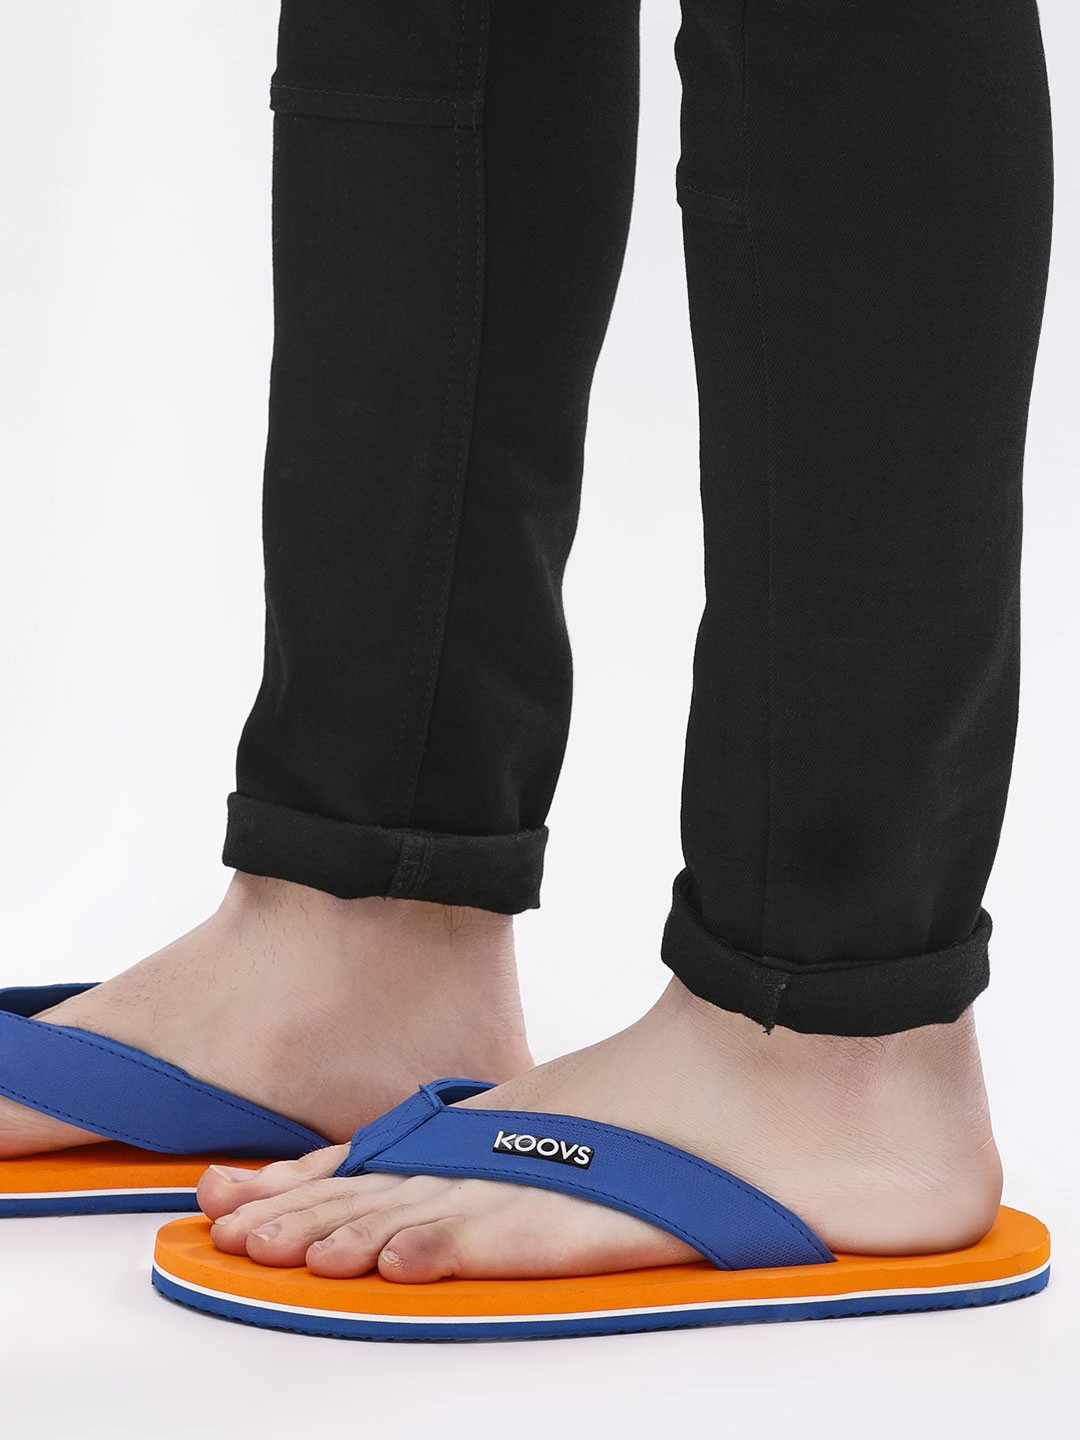 KOOVS Orange Two Tone Flip Flops 1